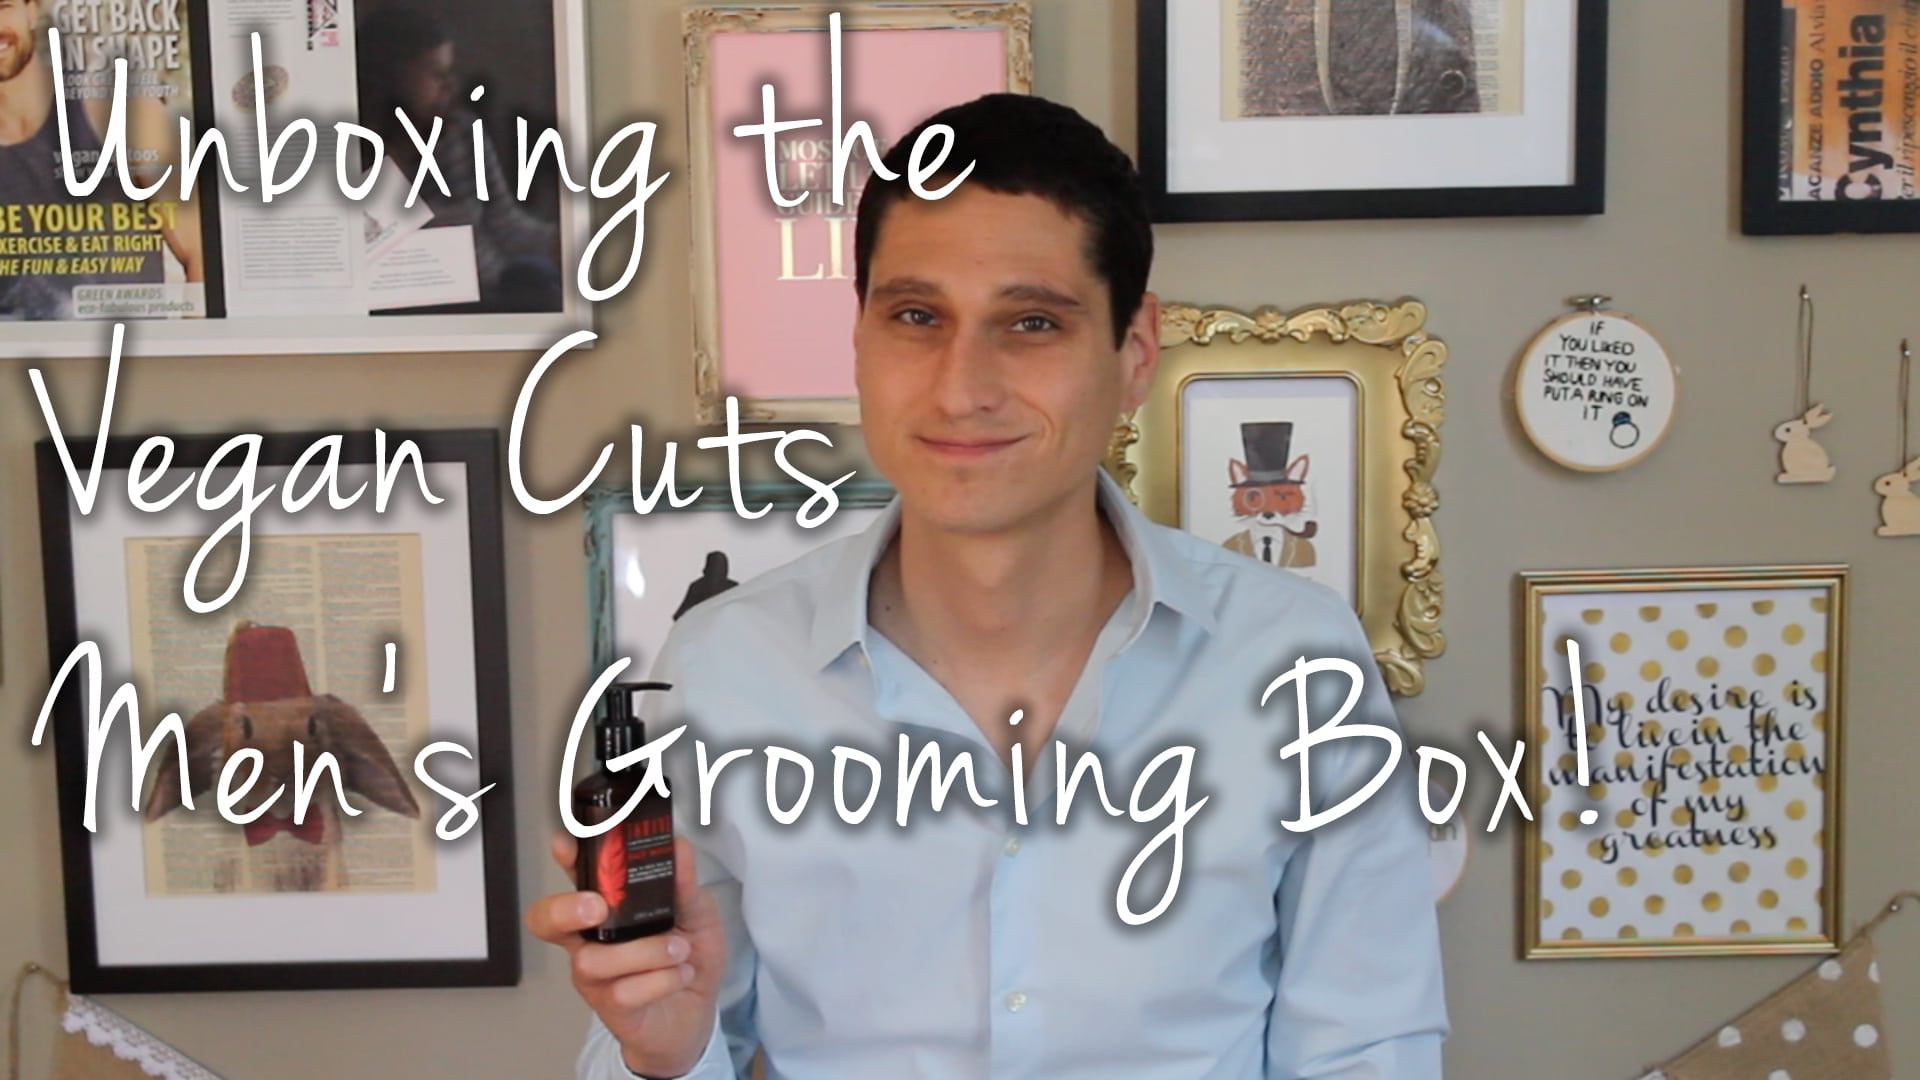 Vegan Cuts Men's Grooming Box First Impressions VideoVegan Cuts Men's Grooming Box First Impressions Video